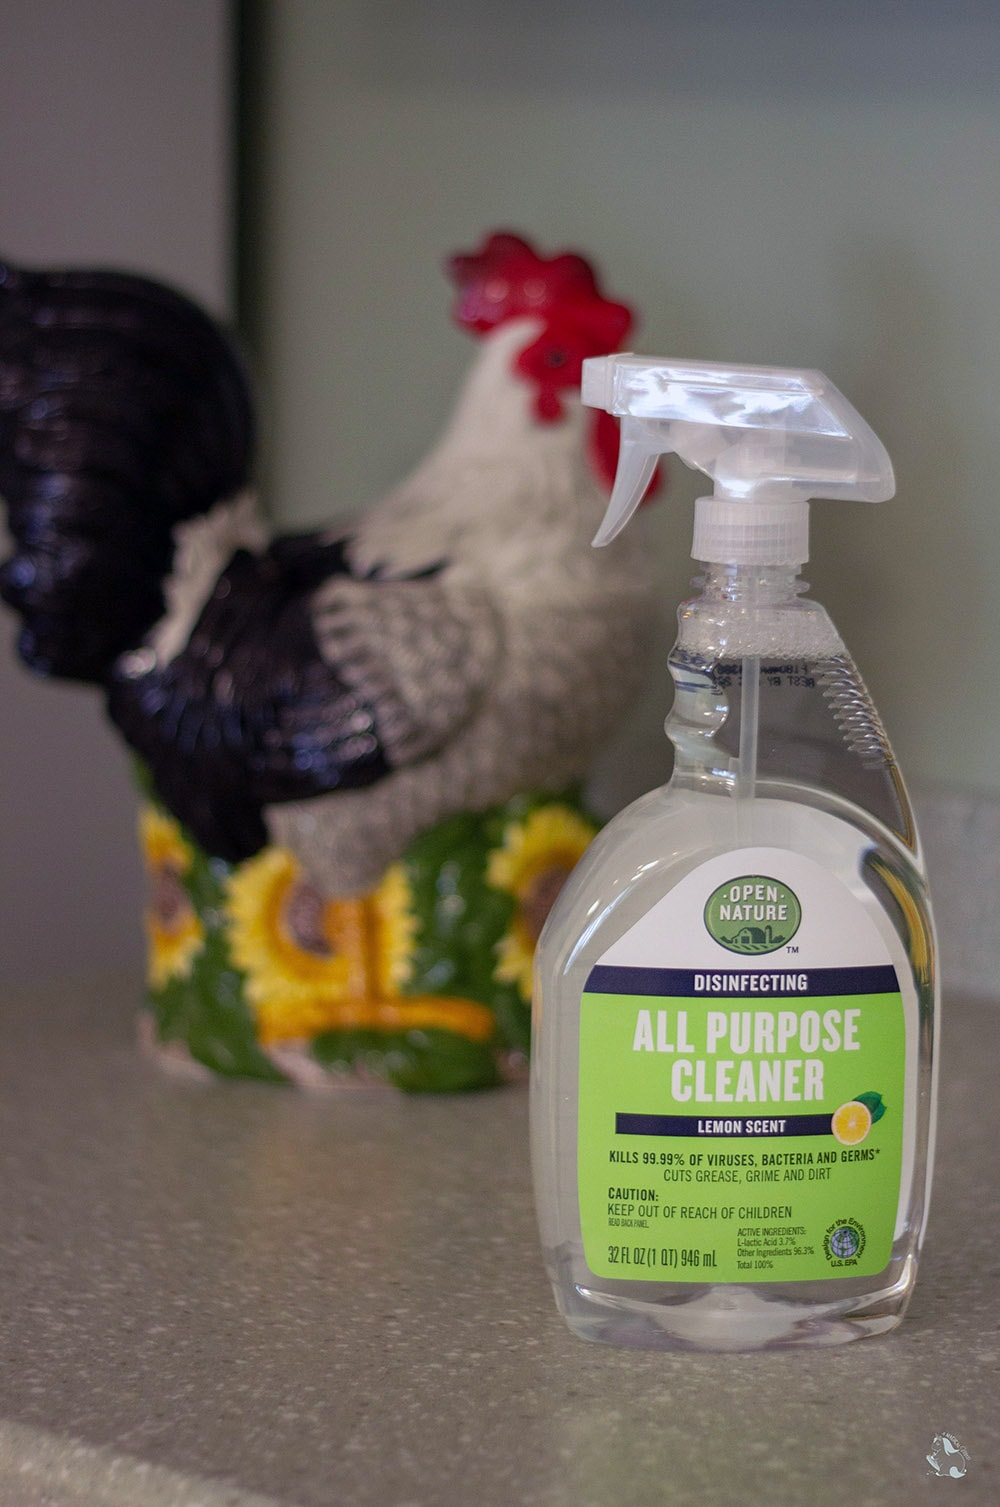 Open Nature all purpose cleaner